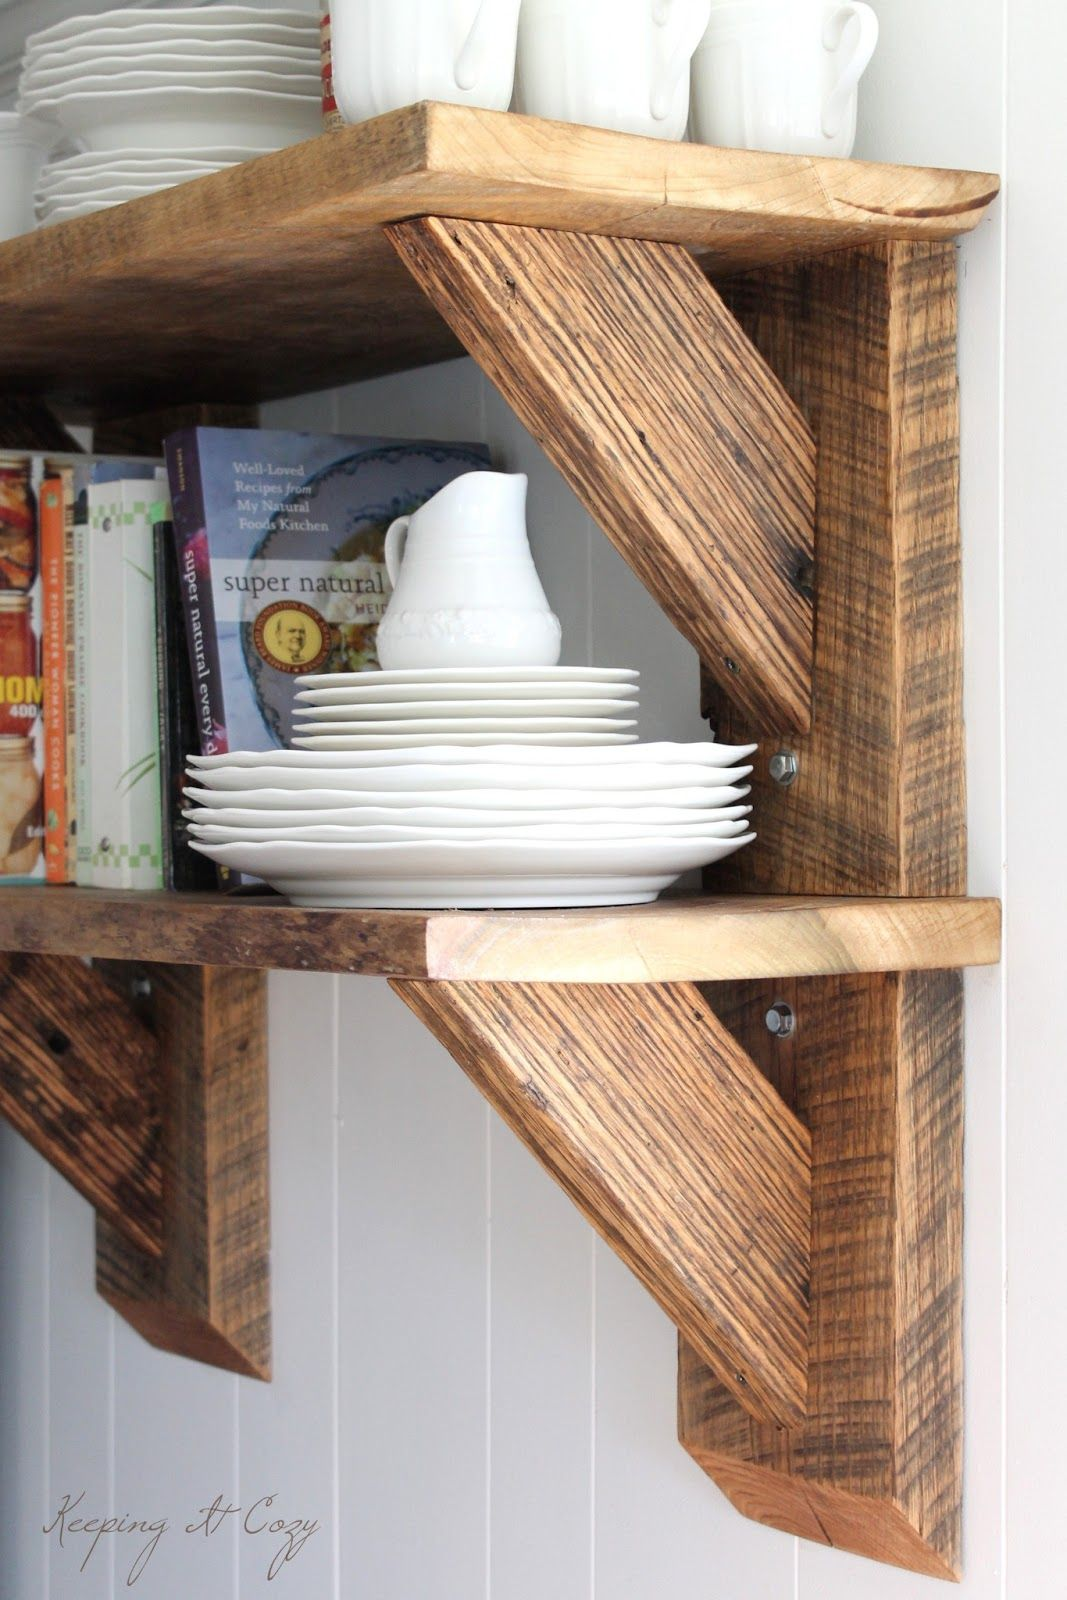 Wood Shelves For Kitchen | The Dark Streaks Visible In The Wood Are A  Result Of